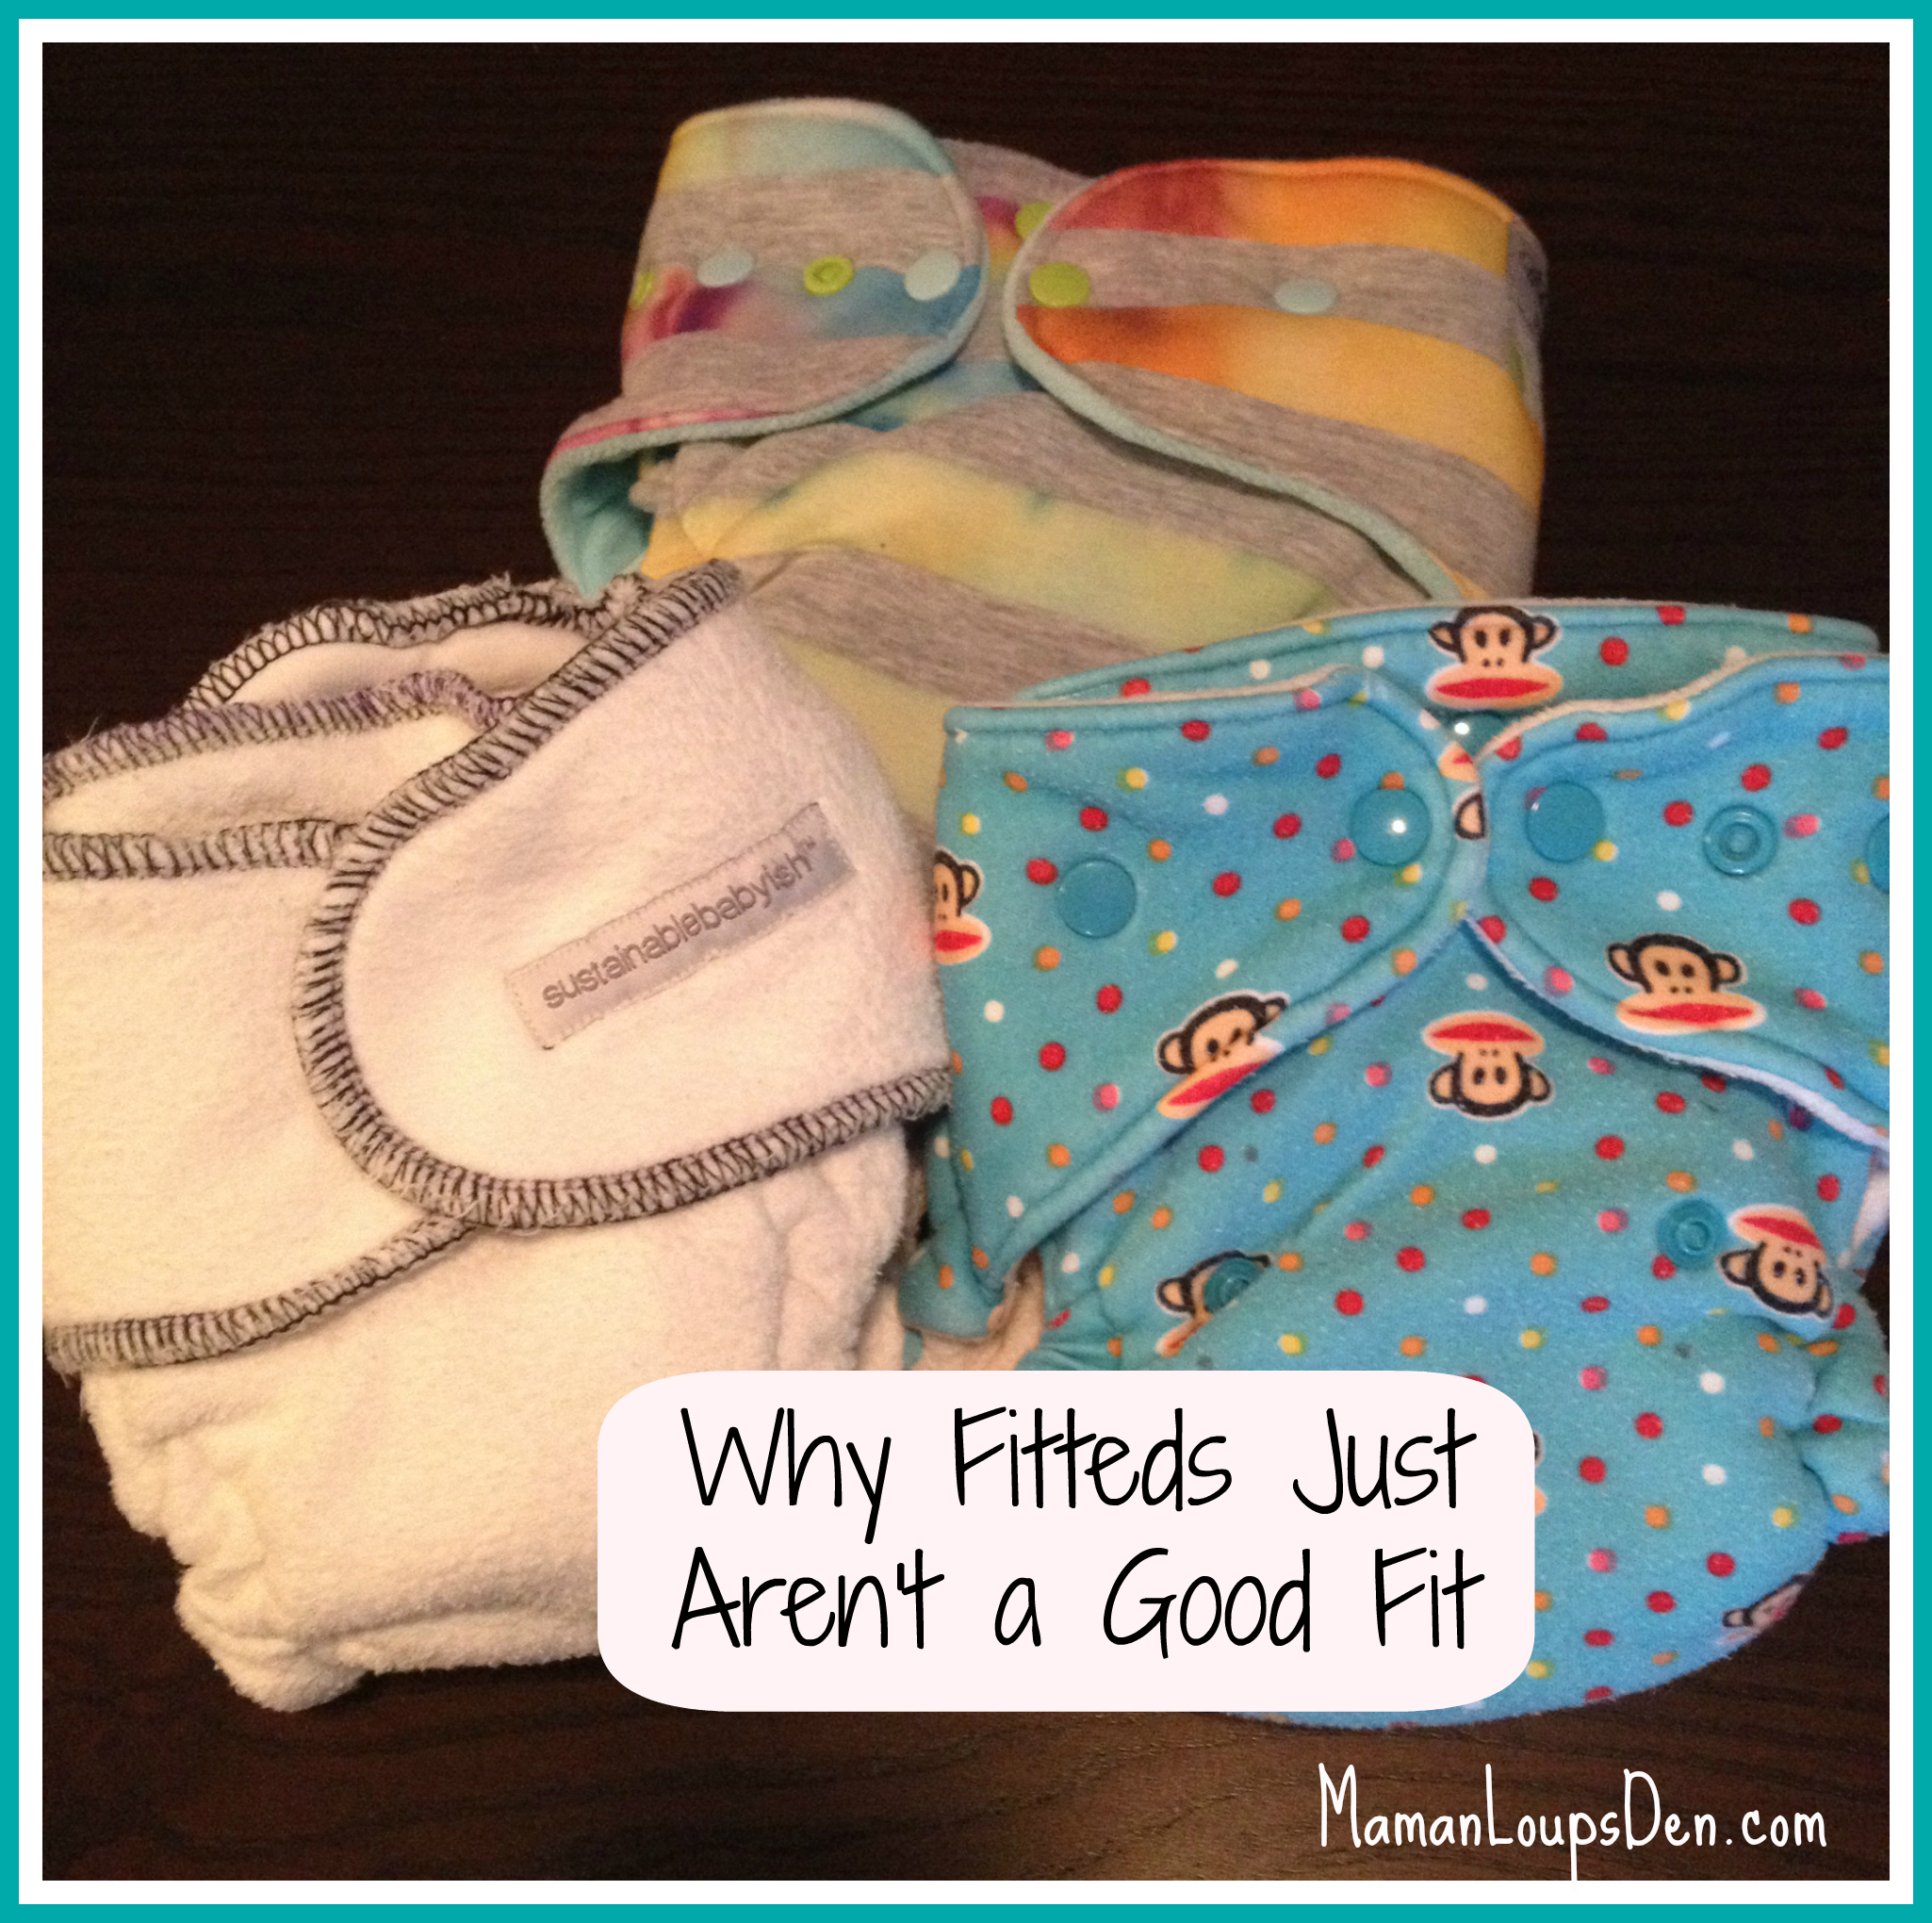 Why Fitteds Aren't A Good Fit